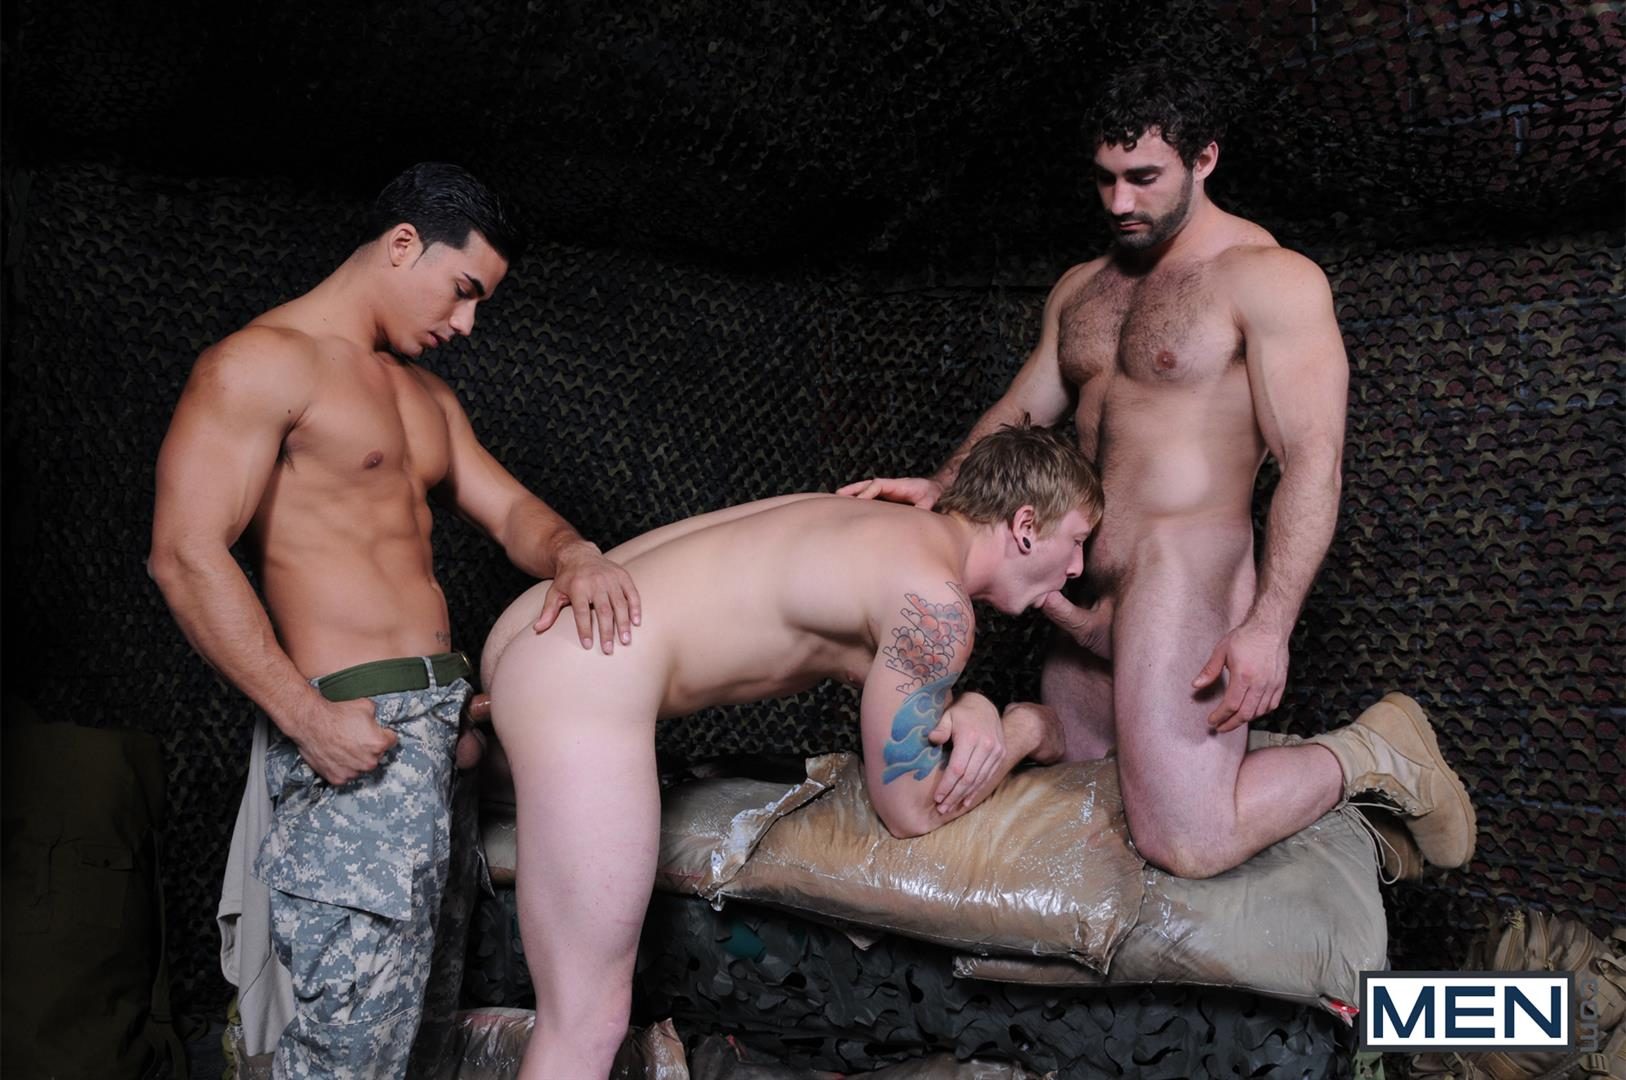 Men Tour of Duty Jaxton Wheeler and Tom Faulk and Topher Di Maggio Army Guys Fucking Amateur Gay Porn 08 Tom Faulk Getting Fucked by Topher DiMaggio and Jaxton Wheeler